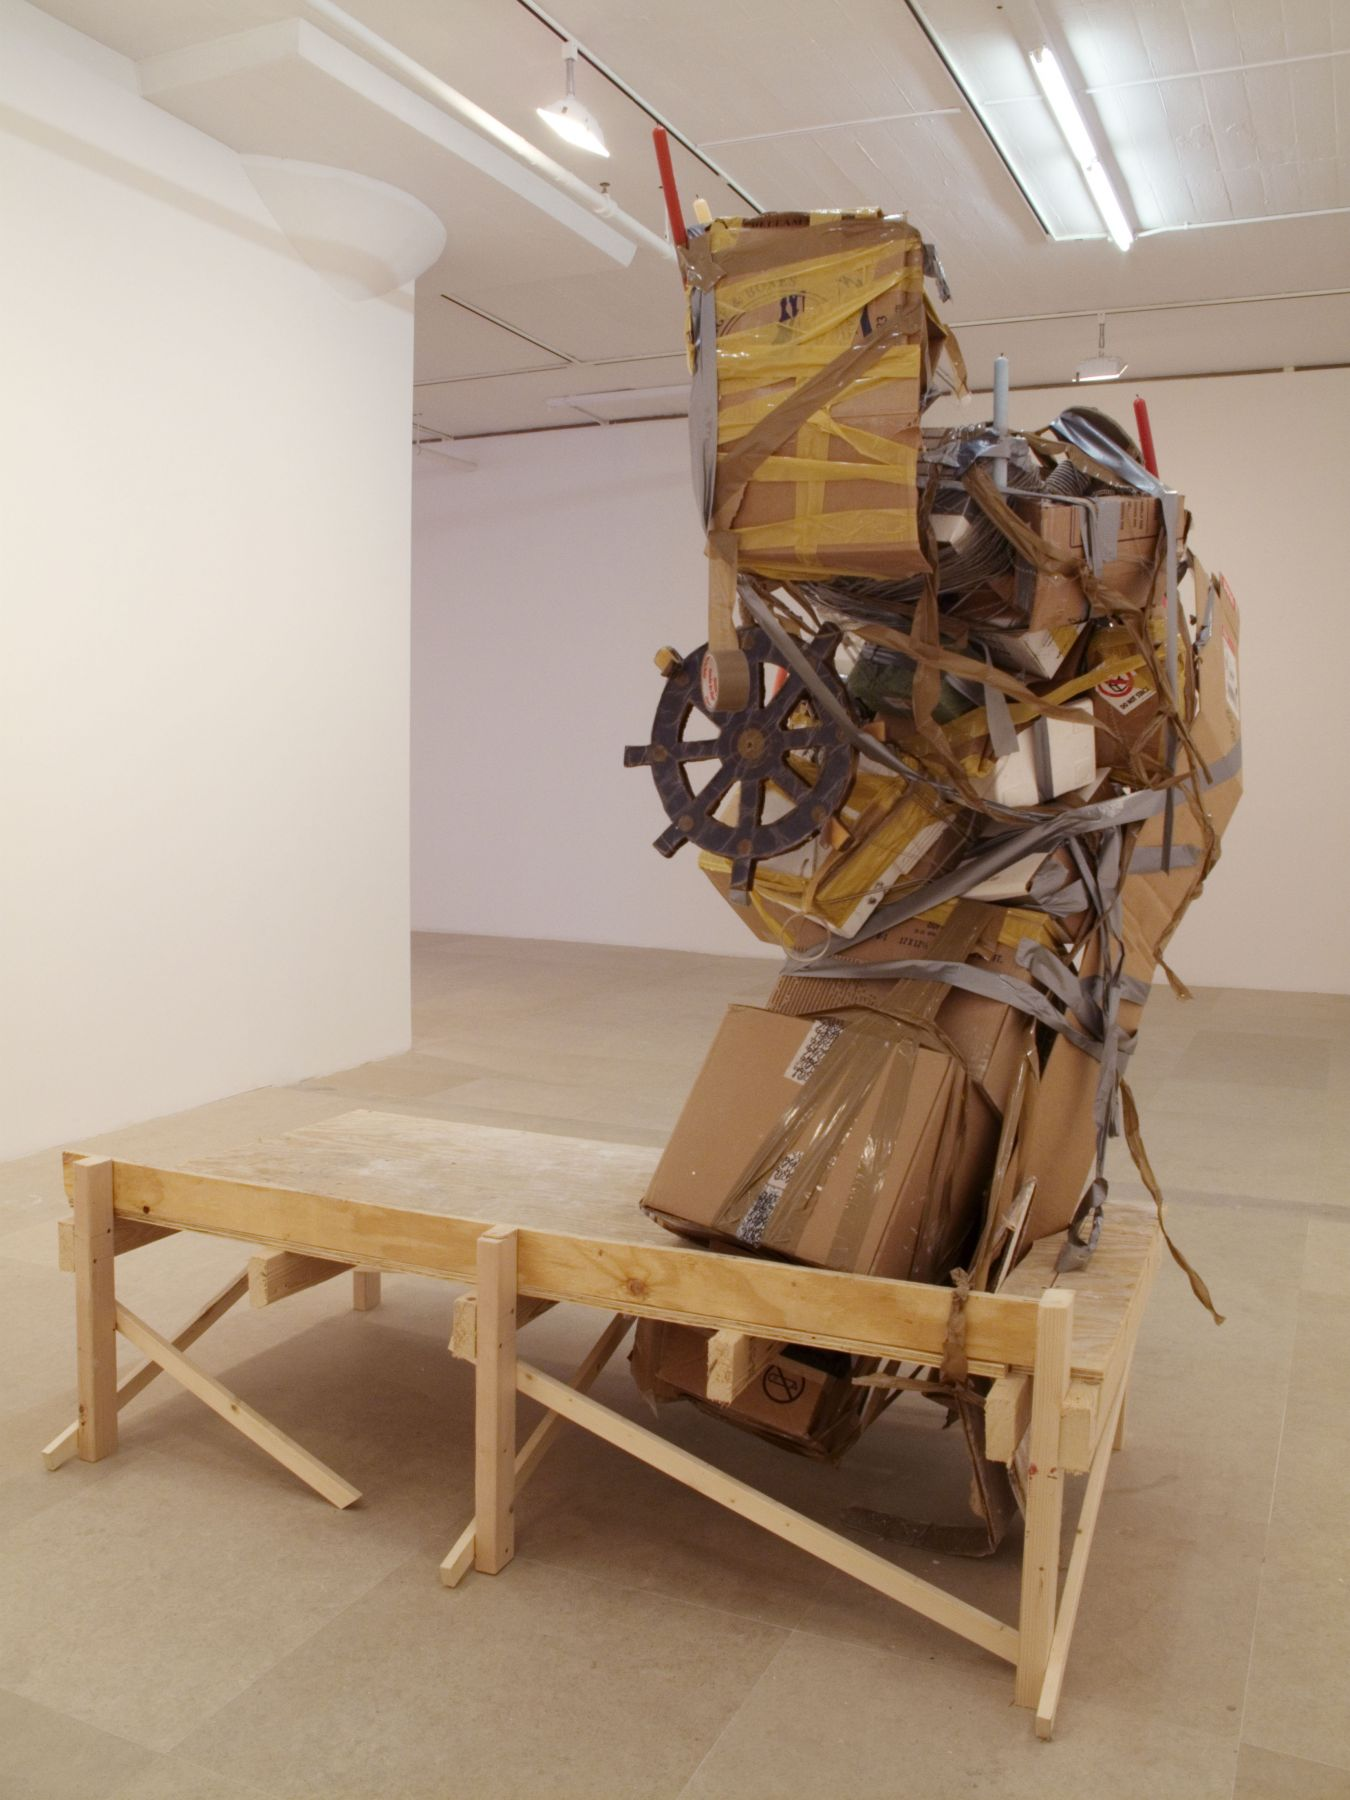 Untitled, 2010, mixed media, 87 x 75 x 57 inches